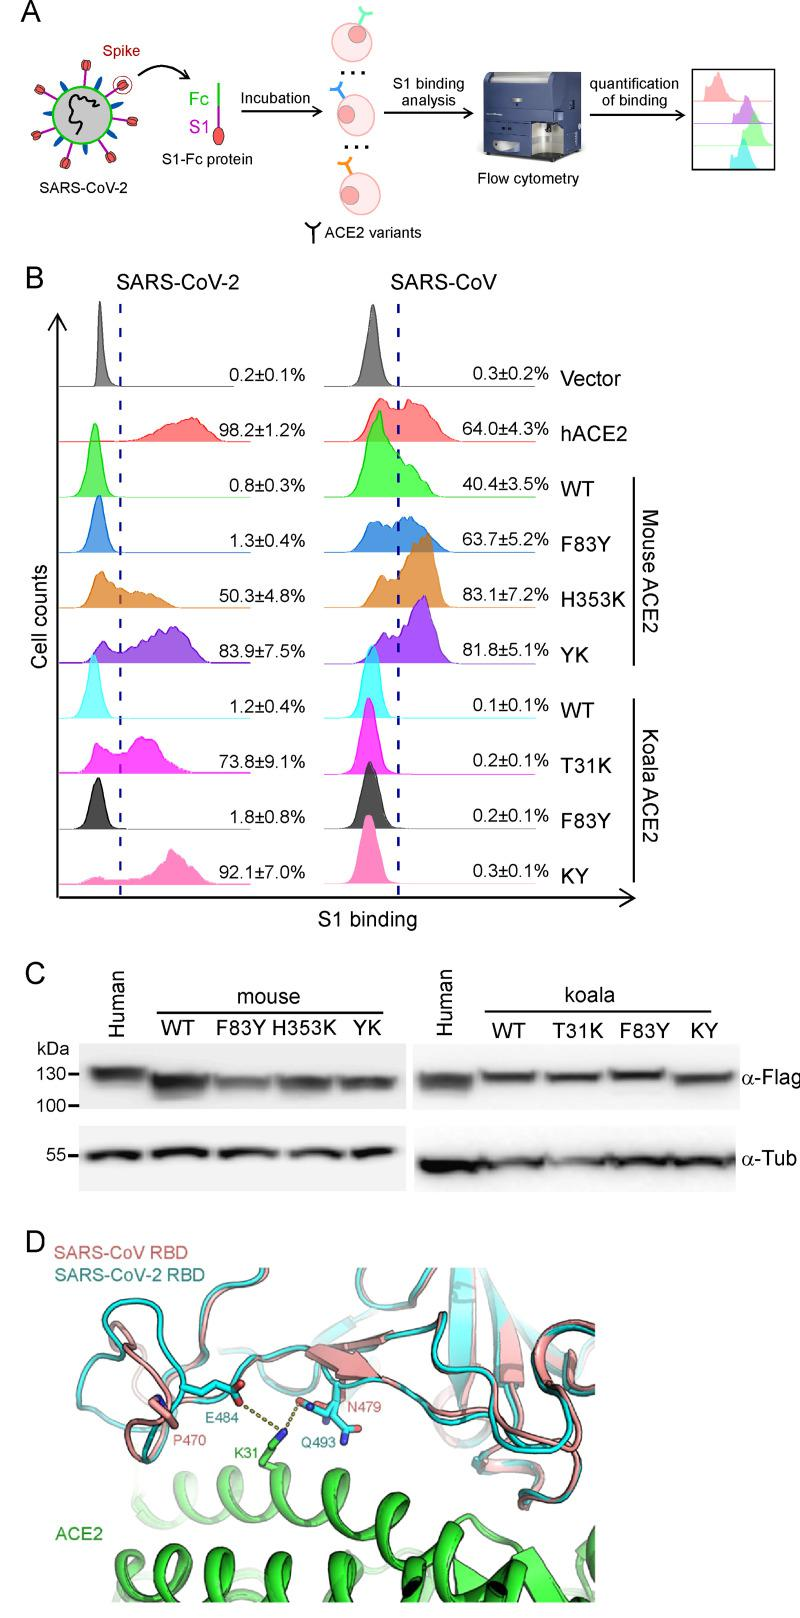 ACE2 mutants bind viral spike protein. (A-B) A549 cells were transduced with ACE2 orthologs or their mutants as indicated, incubated with the recombinant S1 domain of the SARS-CoV-2 or SARS-CoV spike protein C-terminally fused with Fc, and then stained with goat anti-human IgG (H + L) conjugated to Alexa Fluor 647 for flow cytometry analysis. Values are expressed as the percent of cells positive for S1-Fc among the ACE2-expressing cells (zsGreen1+ cells) and shown as the means ± SD from 3 biological replicates. This experiments were independently performed three times with similar results. (C) Representative immunoblots of A549 cells transduced with lentiviruses expressing FLAG-tagged ACE2 orthologs and humanized mutants were subjected to immunoblotting. Tubulin served as the loading control. This experiments were independently performed twice with similar results. (D) The structure of SARS-CoV RBD/ACE2 complex[ 31 ] (PDB: 2AJF) and SARS-CoV-2 RBD/ACE2[ 24 ] (PDB: 6M0J) were selected for comparison. SARS-CoV RBD, SARS-CoV-2 RBD and ACE2 are colored salmon, cyan and green, respectively. K31 of ACE2 and its adjacent residues on SARS-CoV RBD or SARS-CoV2 RBD are shown as sticks.